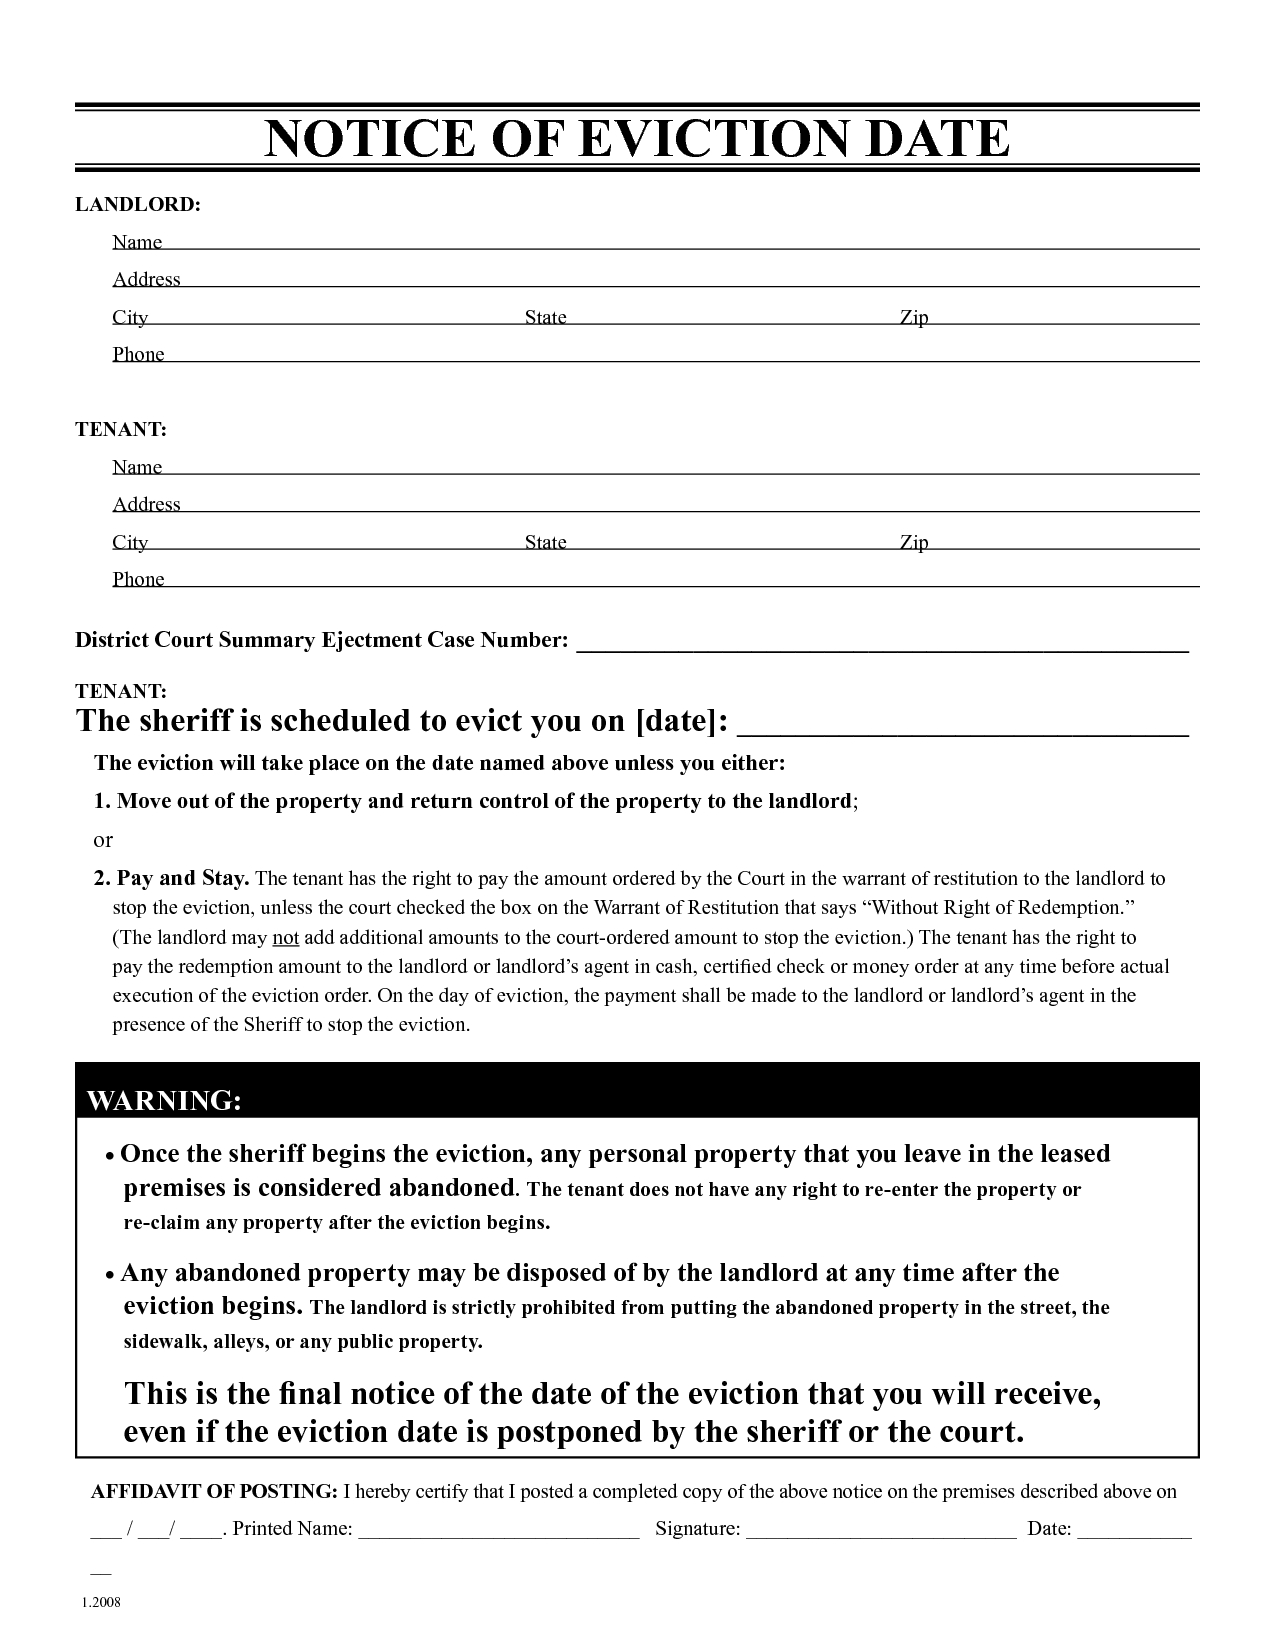 Free Eviction Notice Template   Printable Eviction Notice   Leaave - Free Printable Eviction Notice